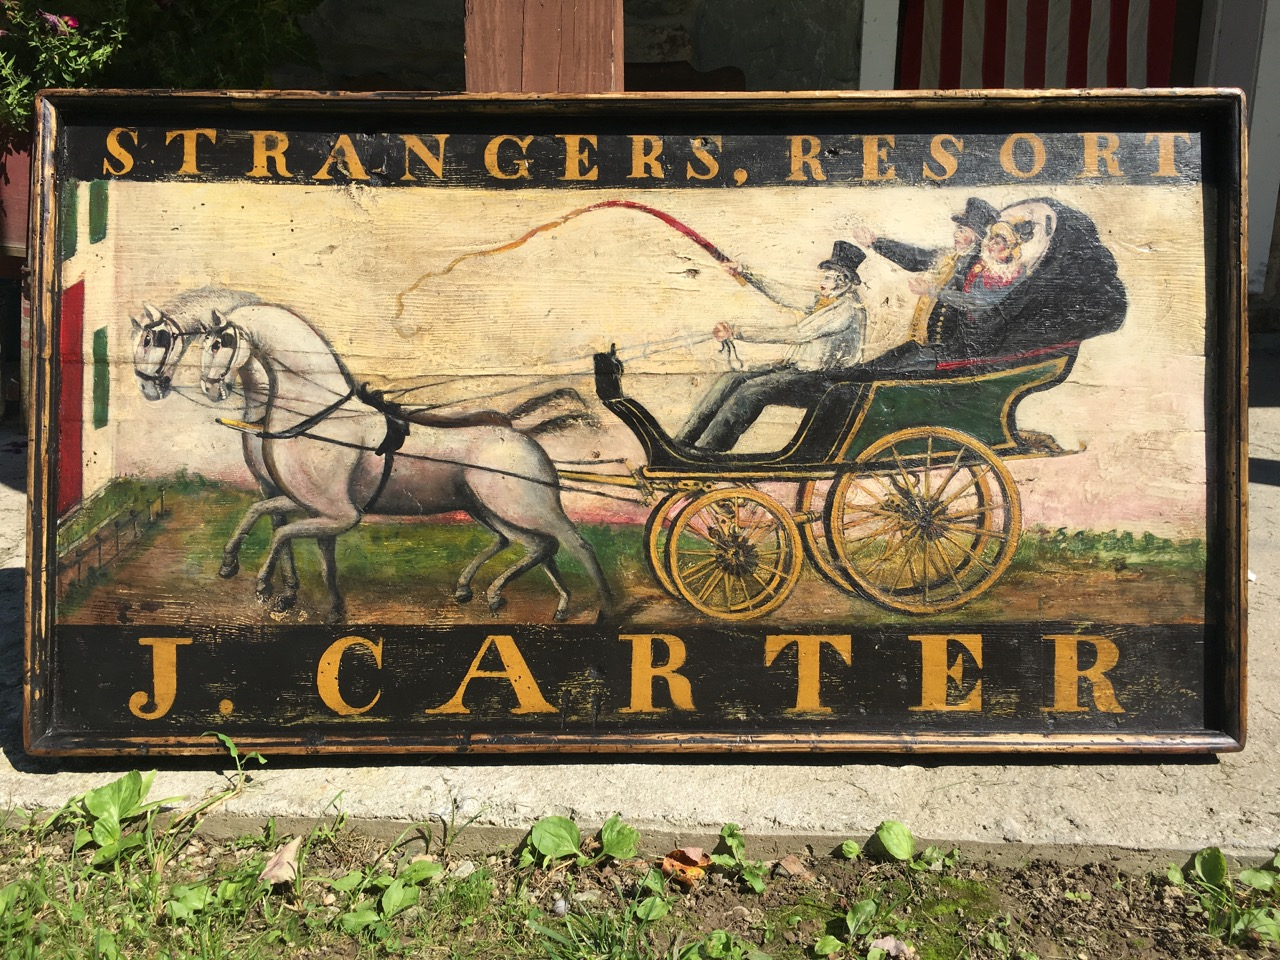 colonial american sign company_jcarter outside - 1.jpg